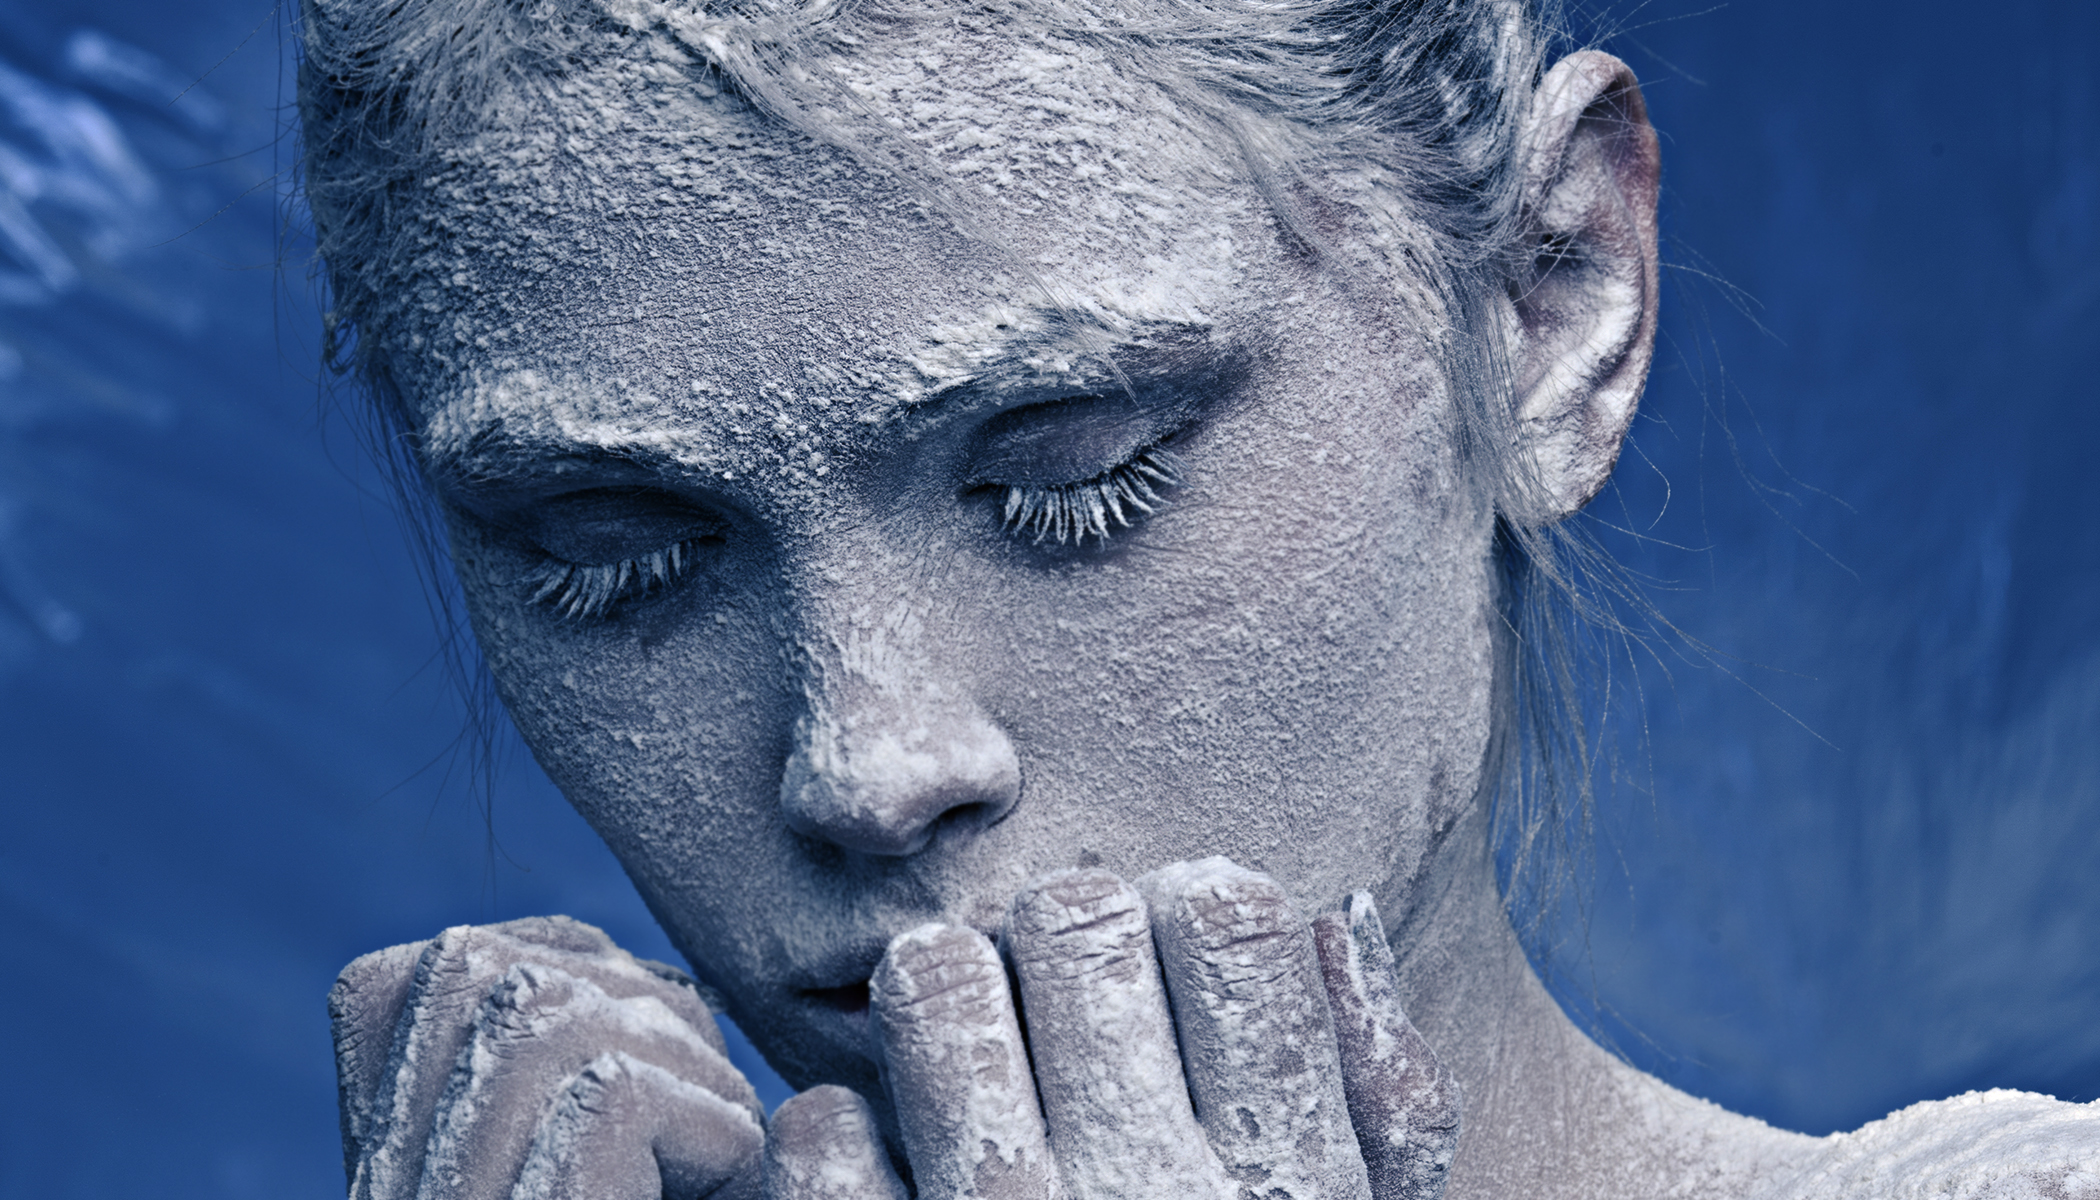 Lady Was 'Frozen Solid' After 6 Hours in -22ºF, but She Defrosted, Returning Home Later